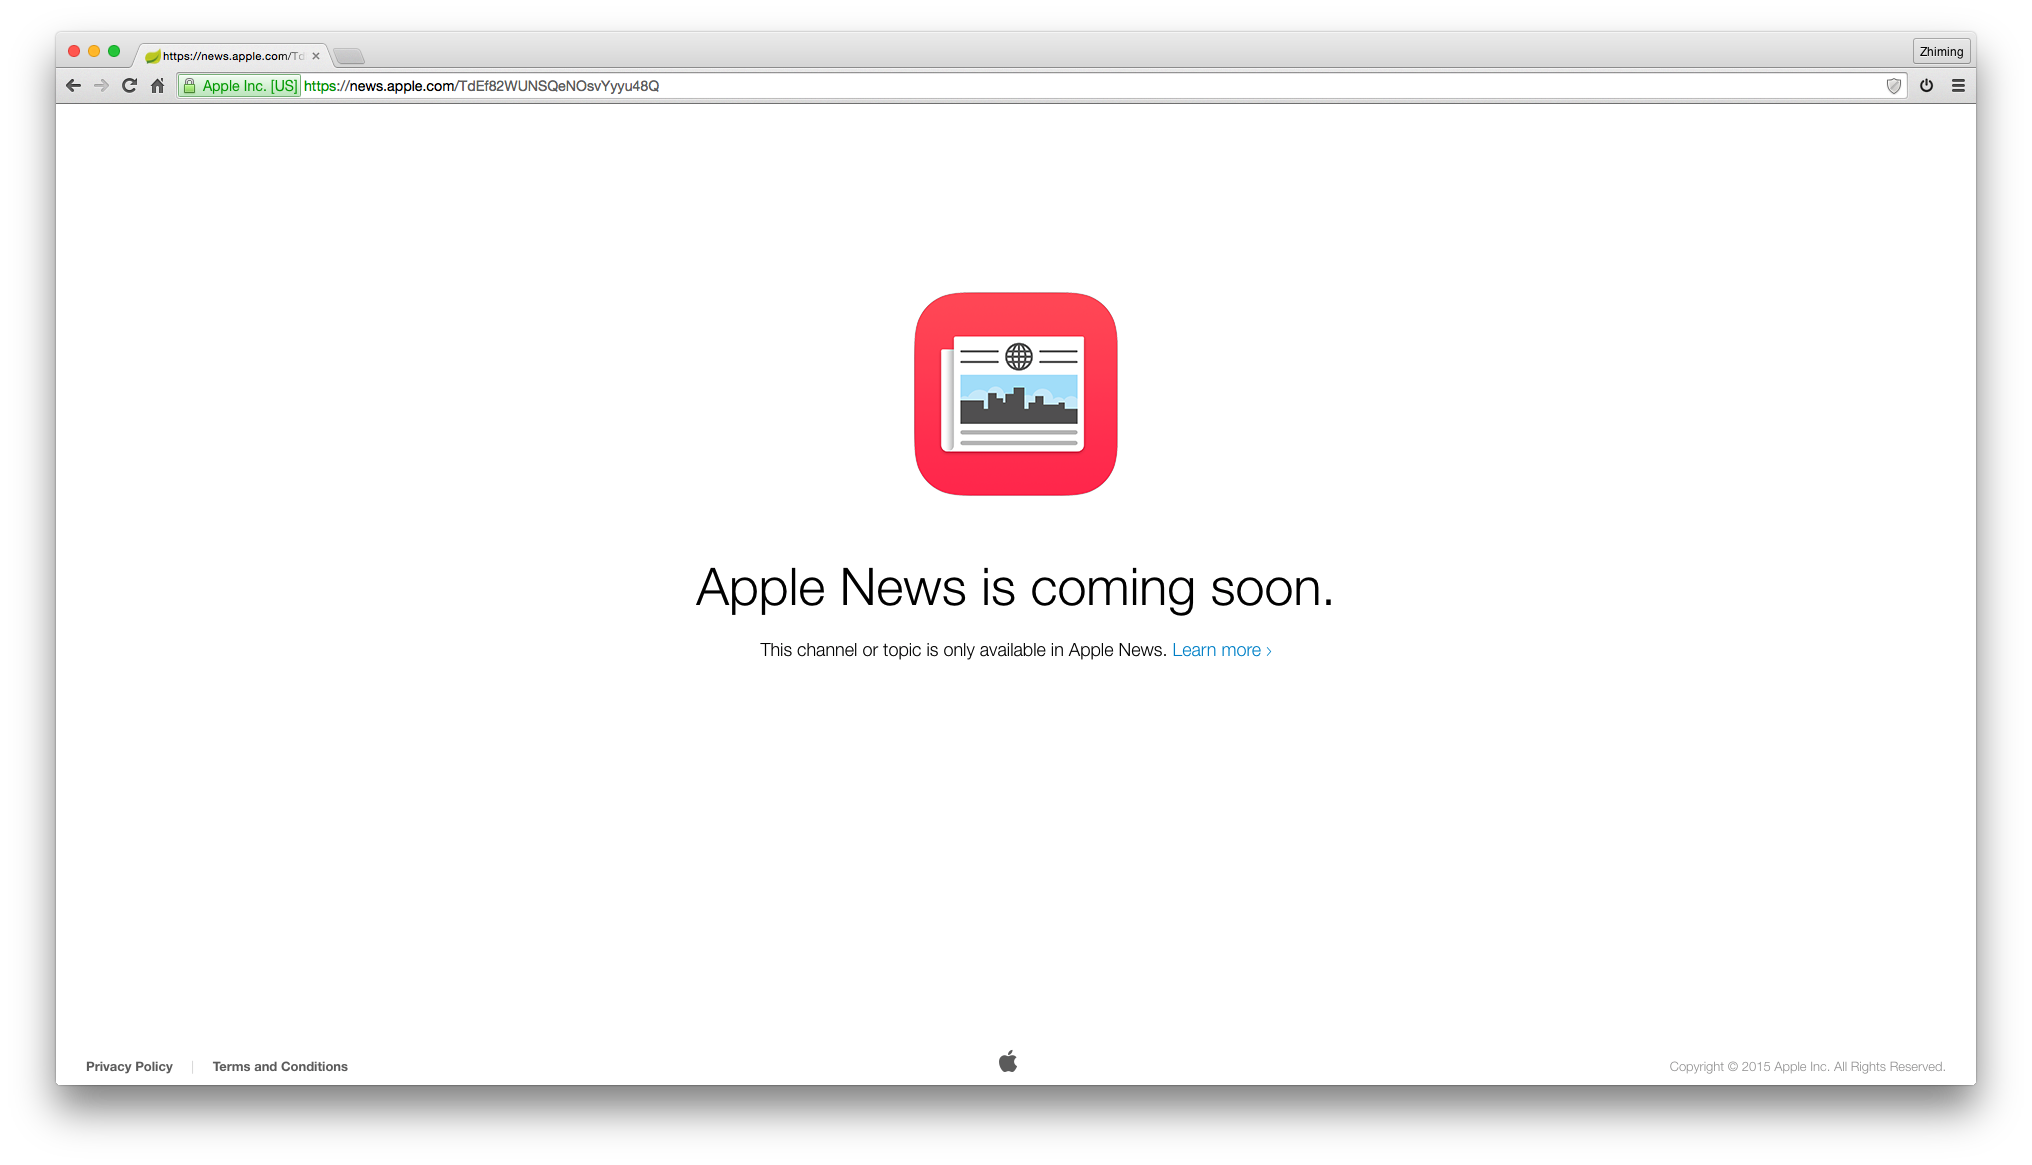 Apple News is coming soon. This channel or topic is only available in Apple News.